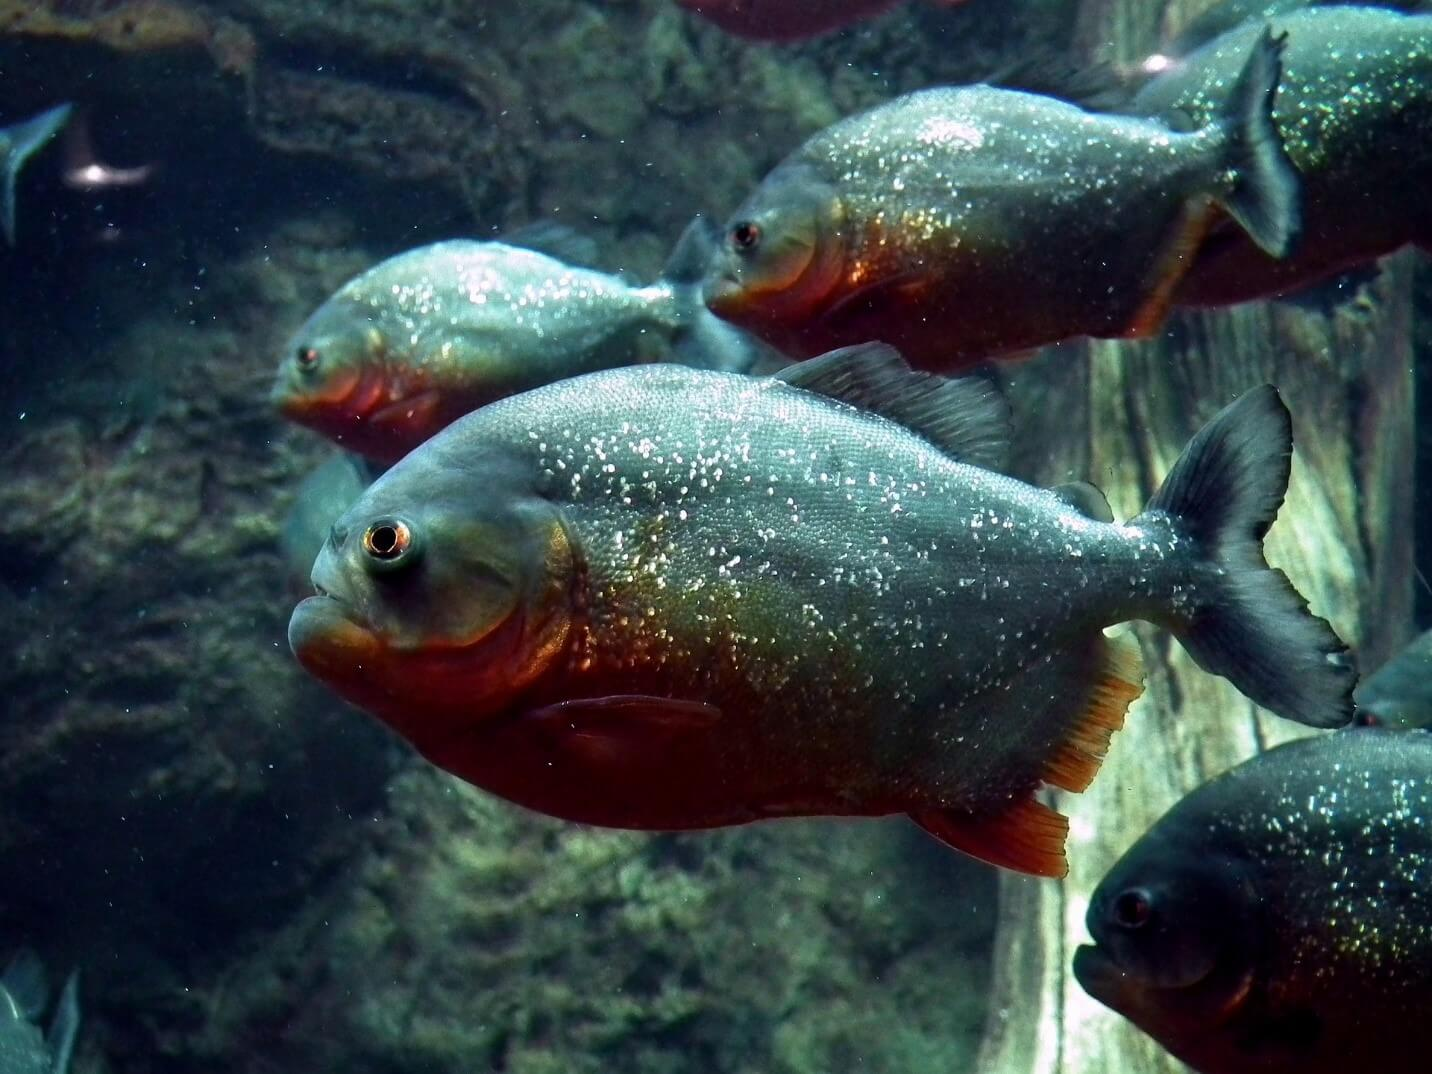 grey piranha fish in the aquarium